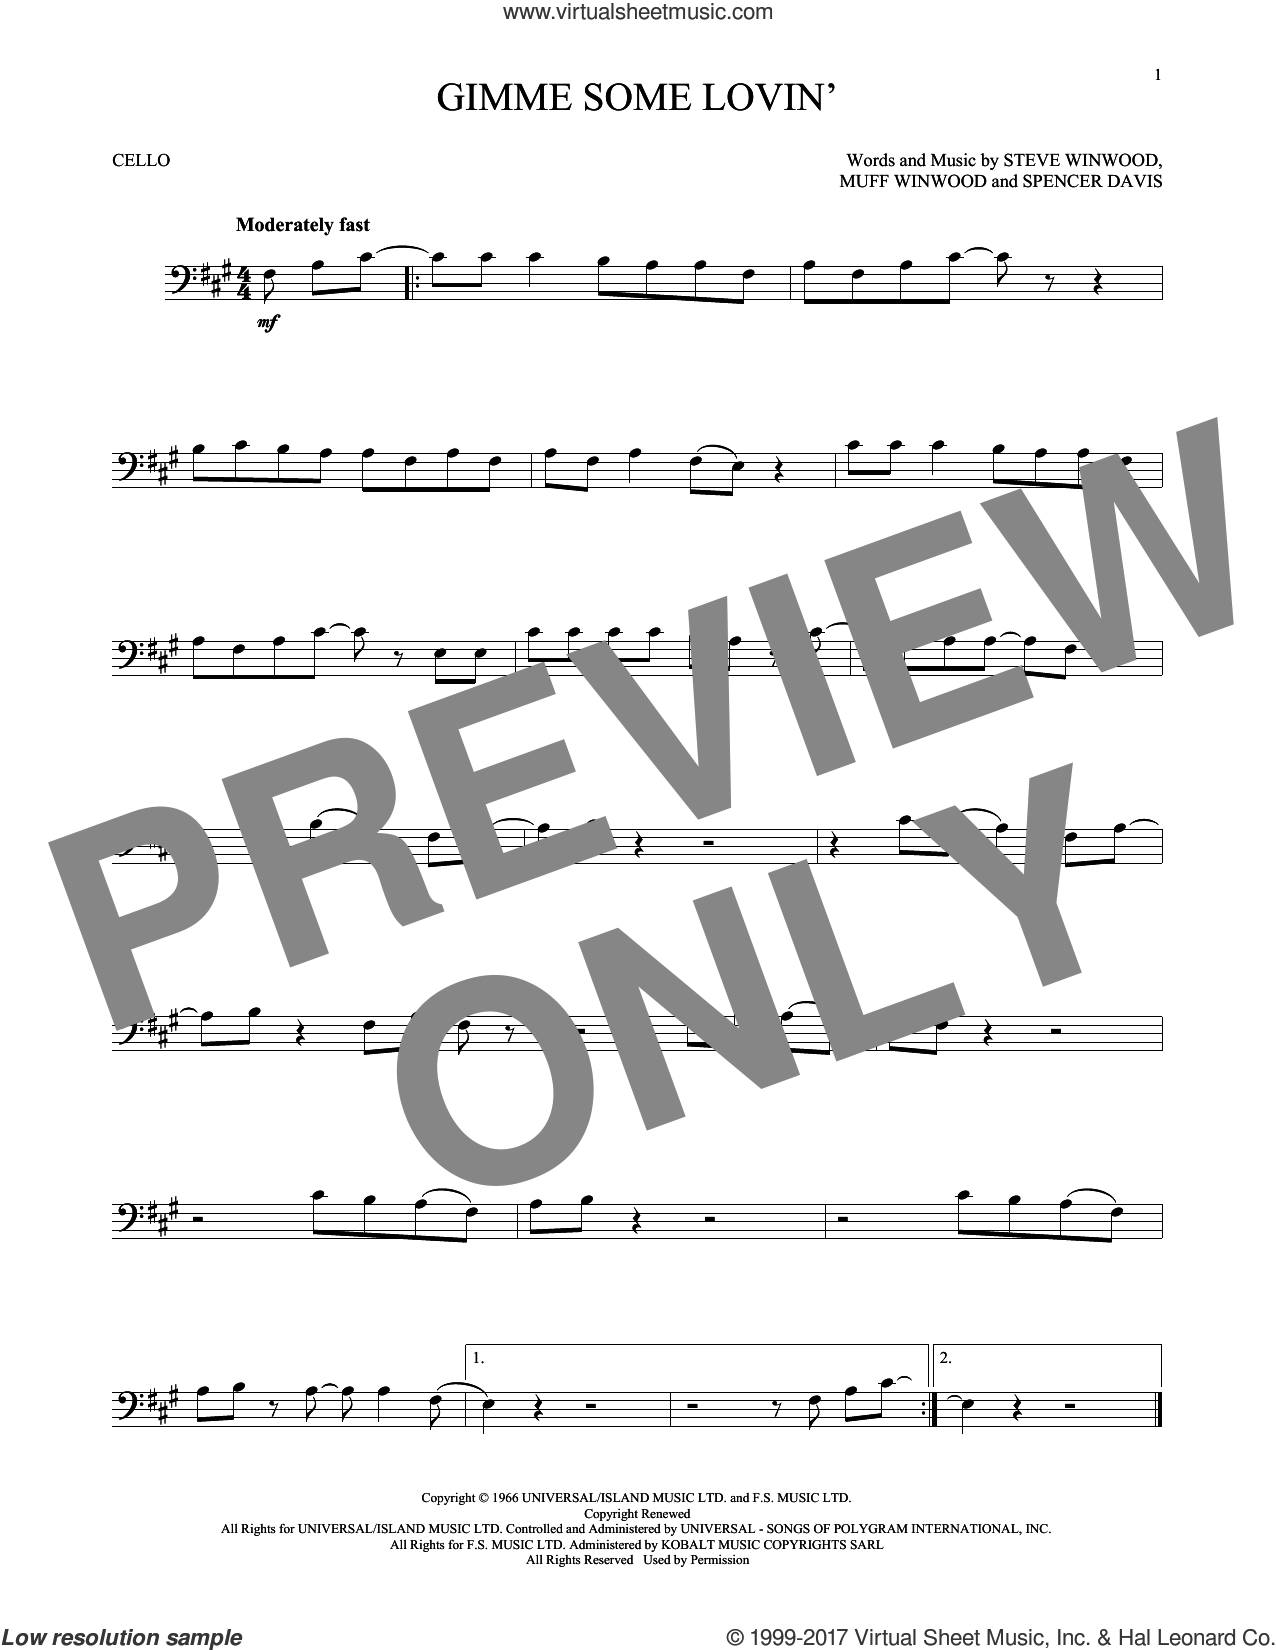 Gimme Some Lovin' sheet music for cello solo by The Spencer Davis Group, Muff Winwood, Spencer Davis and Steve Winwood, intermediate skill level